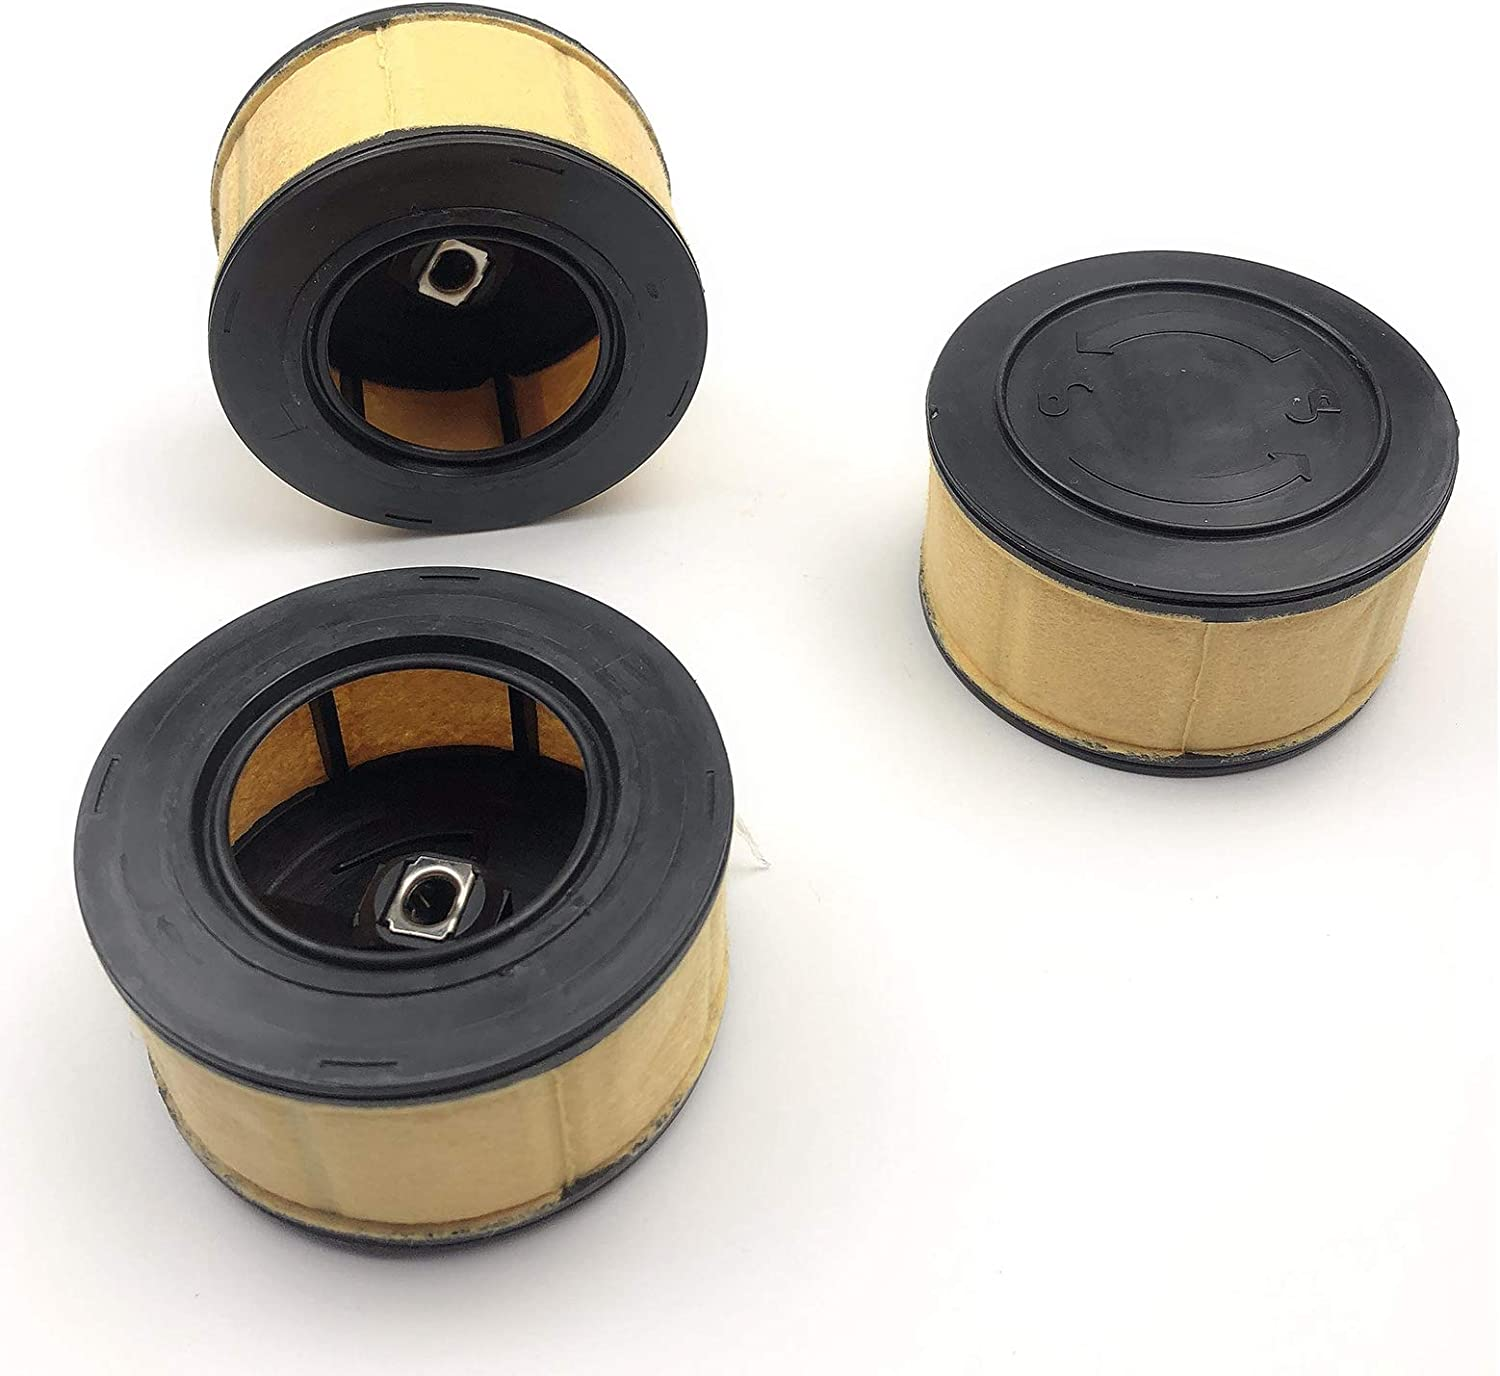 Air Filter Kit 3Pcs Fits for Stihl MS231 MS251 MS271 MS311 and ...